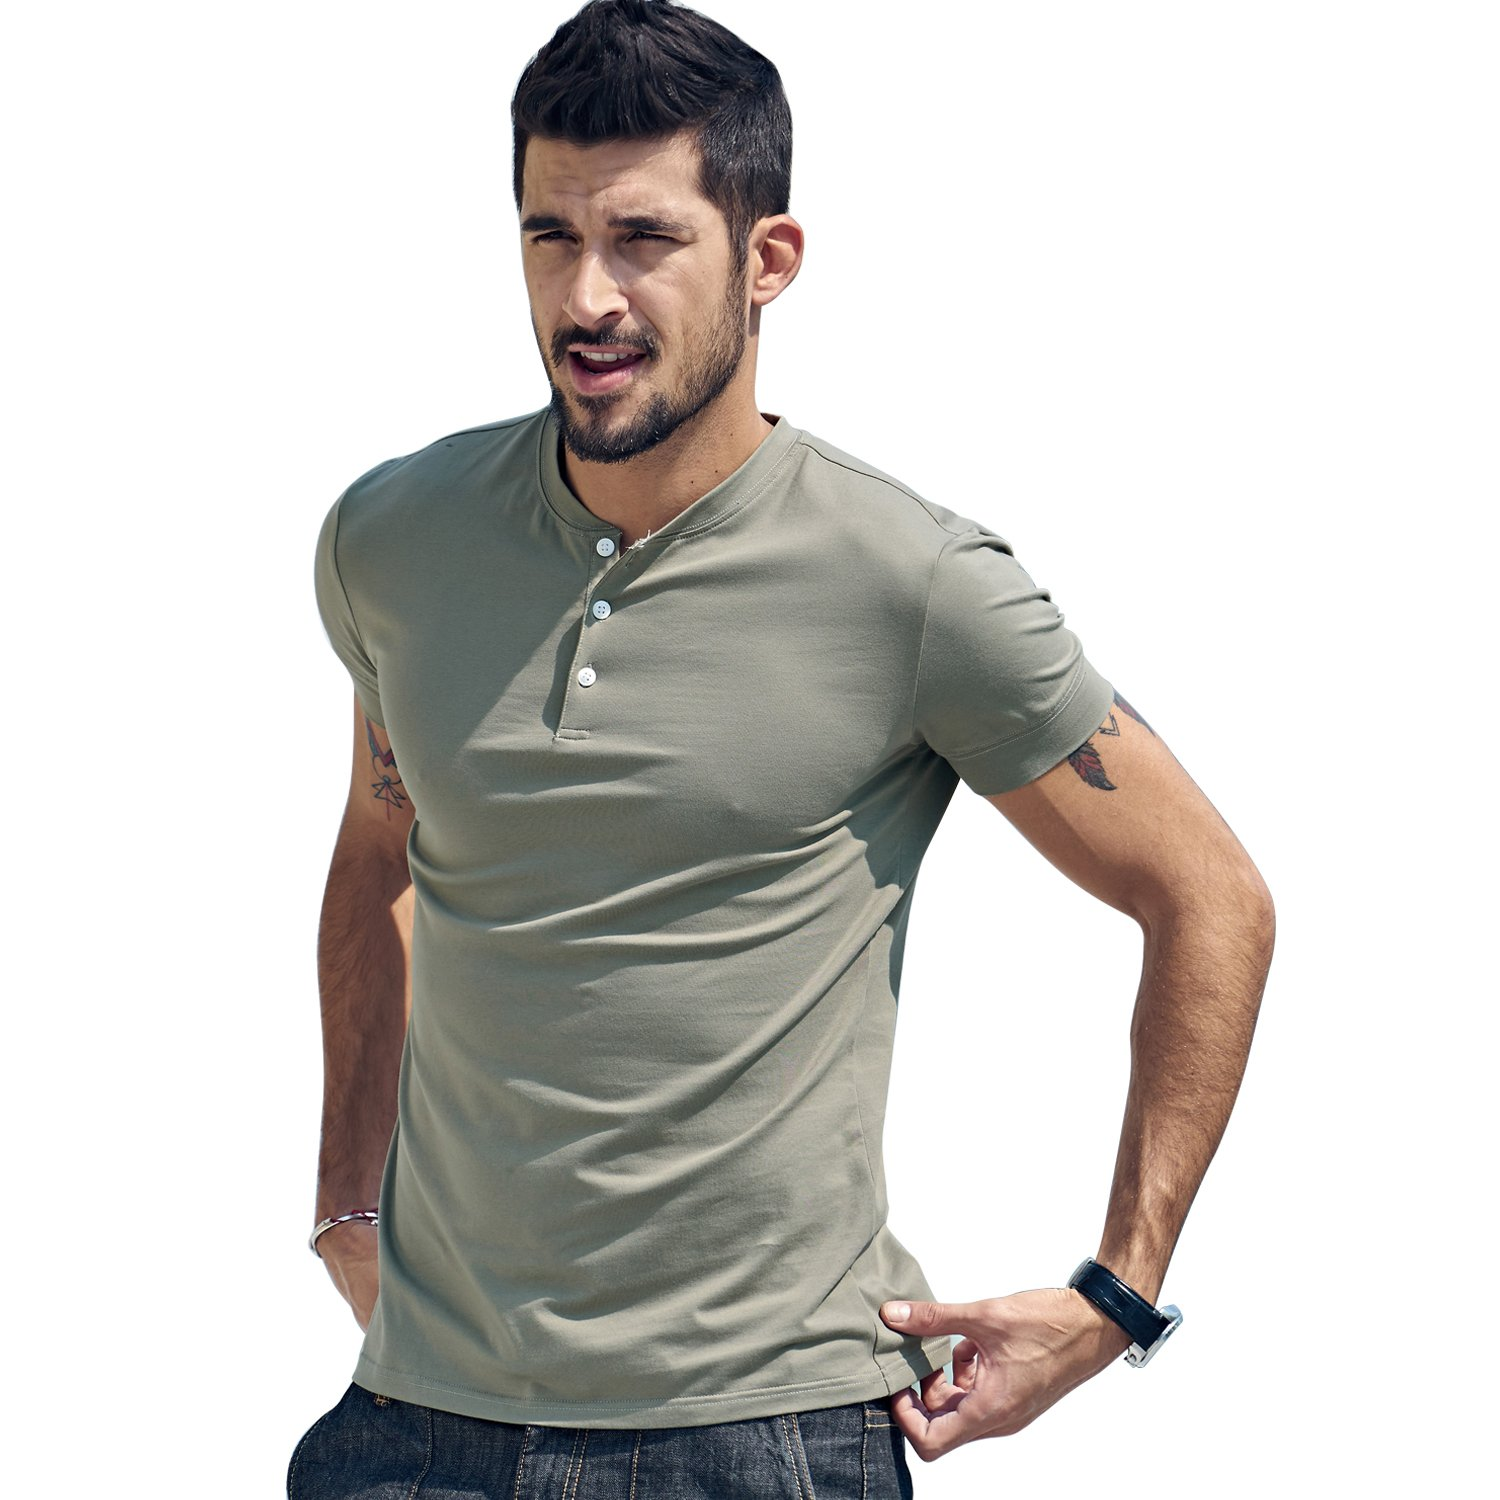 Men Casual T Shirt V Neck Short Sleeve Cotton Button Stylish Loose Slim Fit Sport Workout Outdoor Wear Gym Beach Party Hiking Travel Business Working Weekend Henley Shirts High Elasticity(XLArmGreen) by VAVE